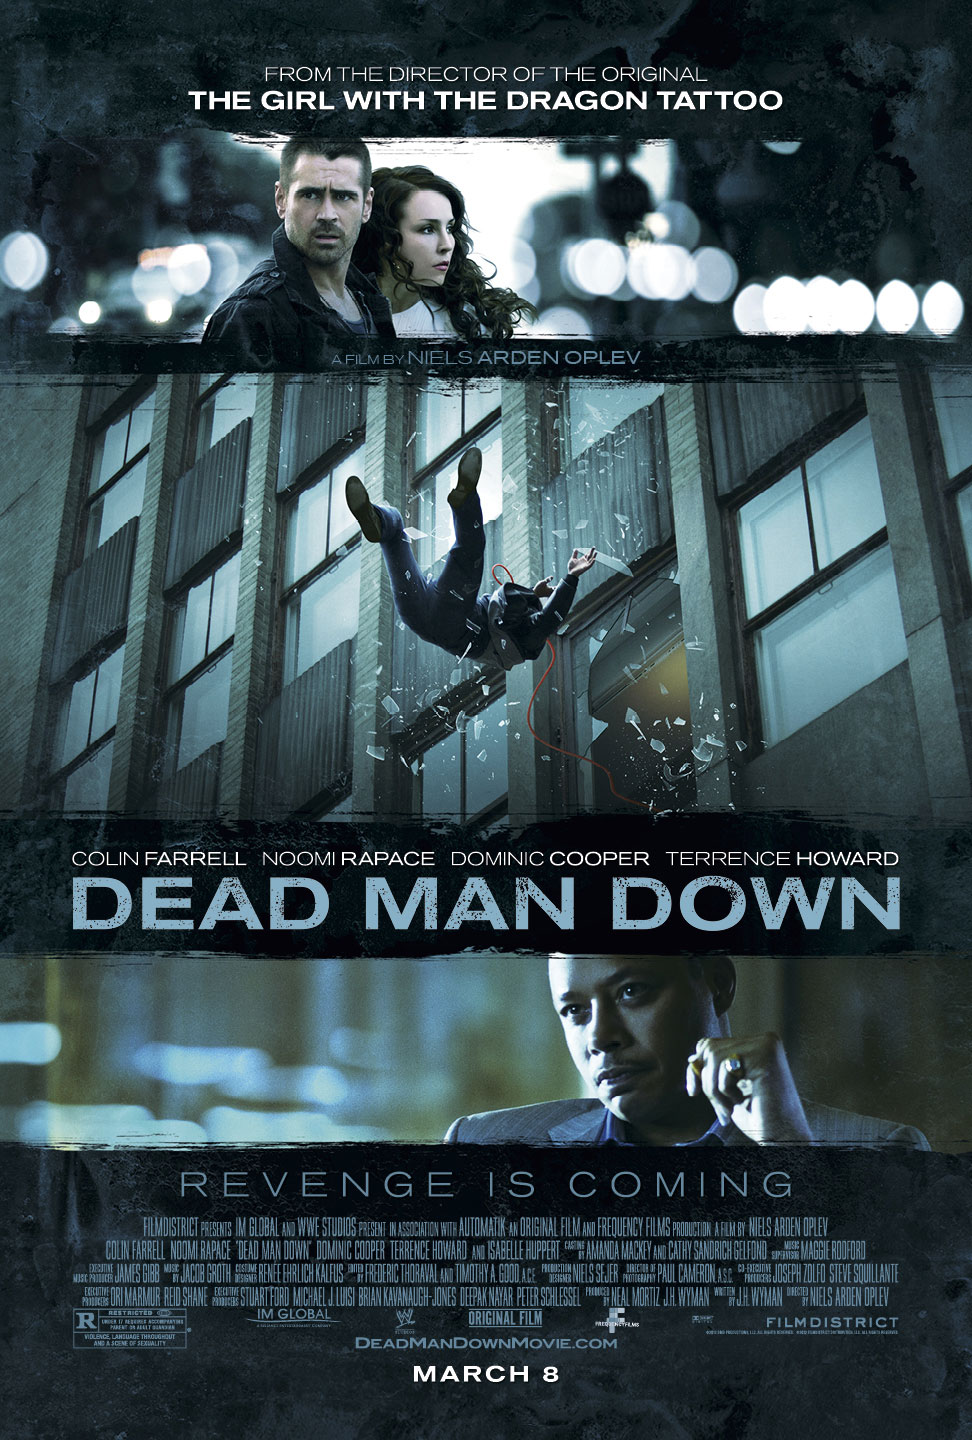 Colin Farrell Seeks Revenge in New Dead Man Down Trailer and Poster